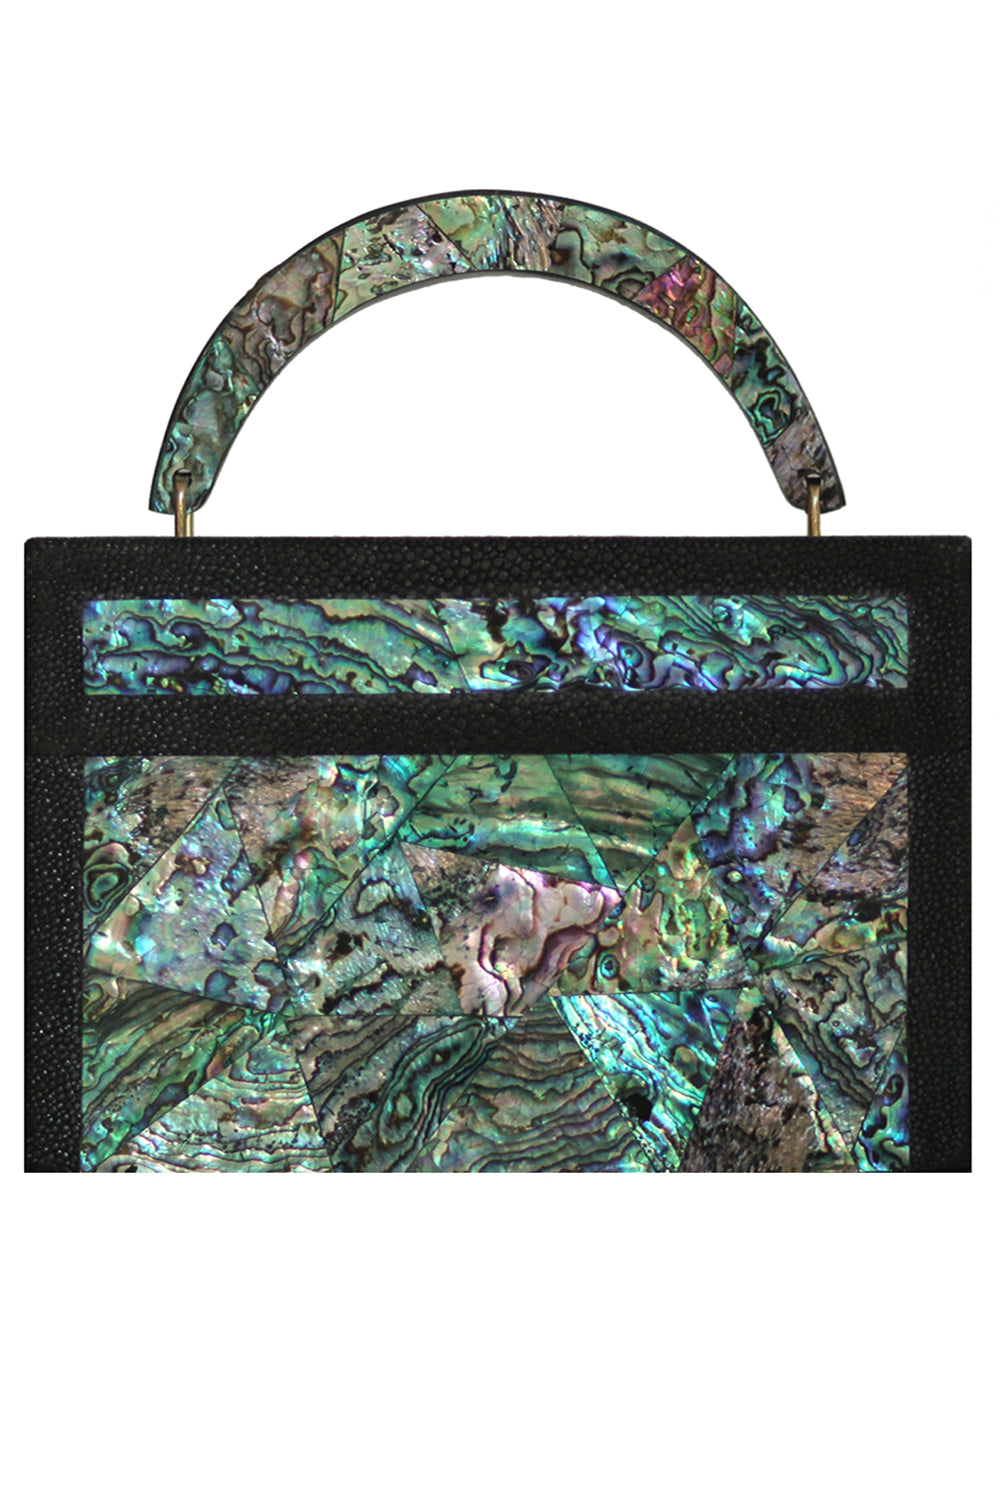 Arista Clutch in Paua Shell & Shagreen Trim